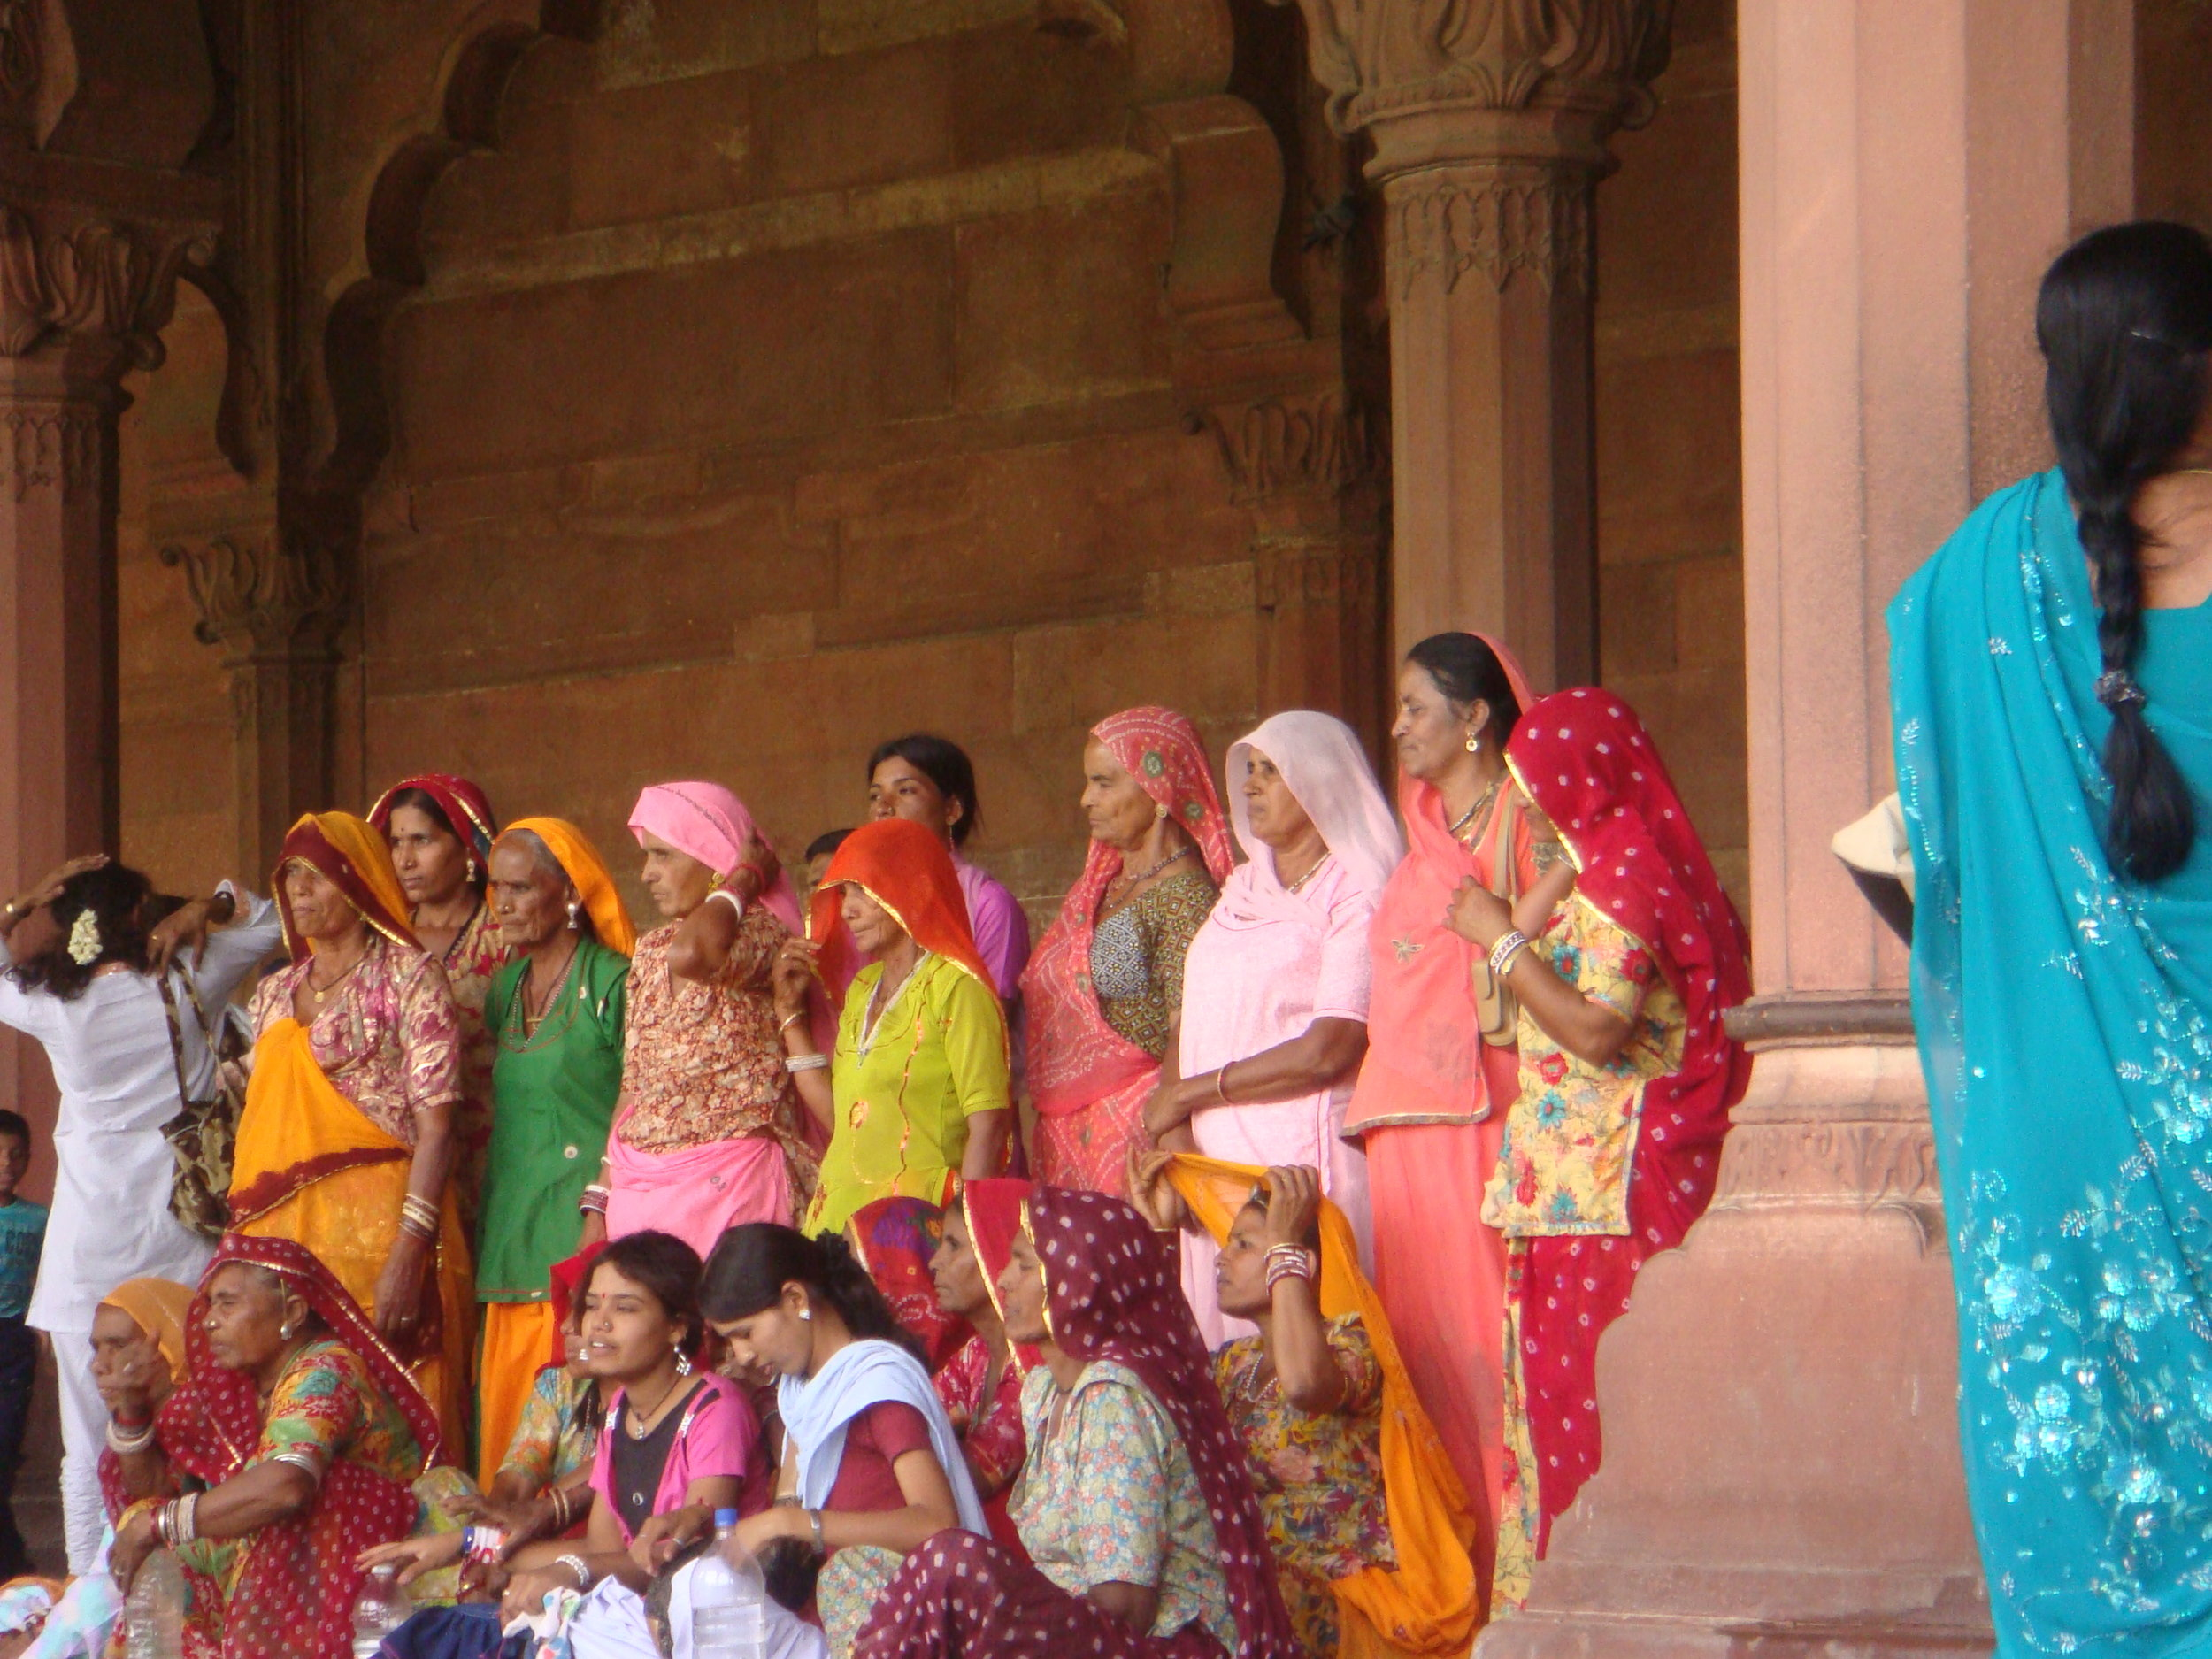 I took this photo of this group of ladies in these wonderful saris with their permission